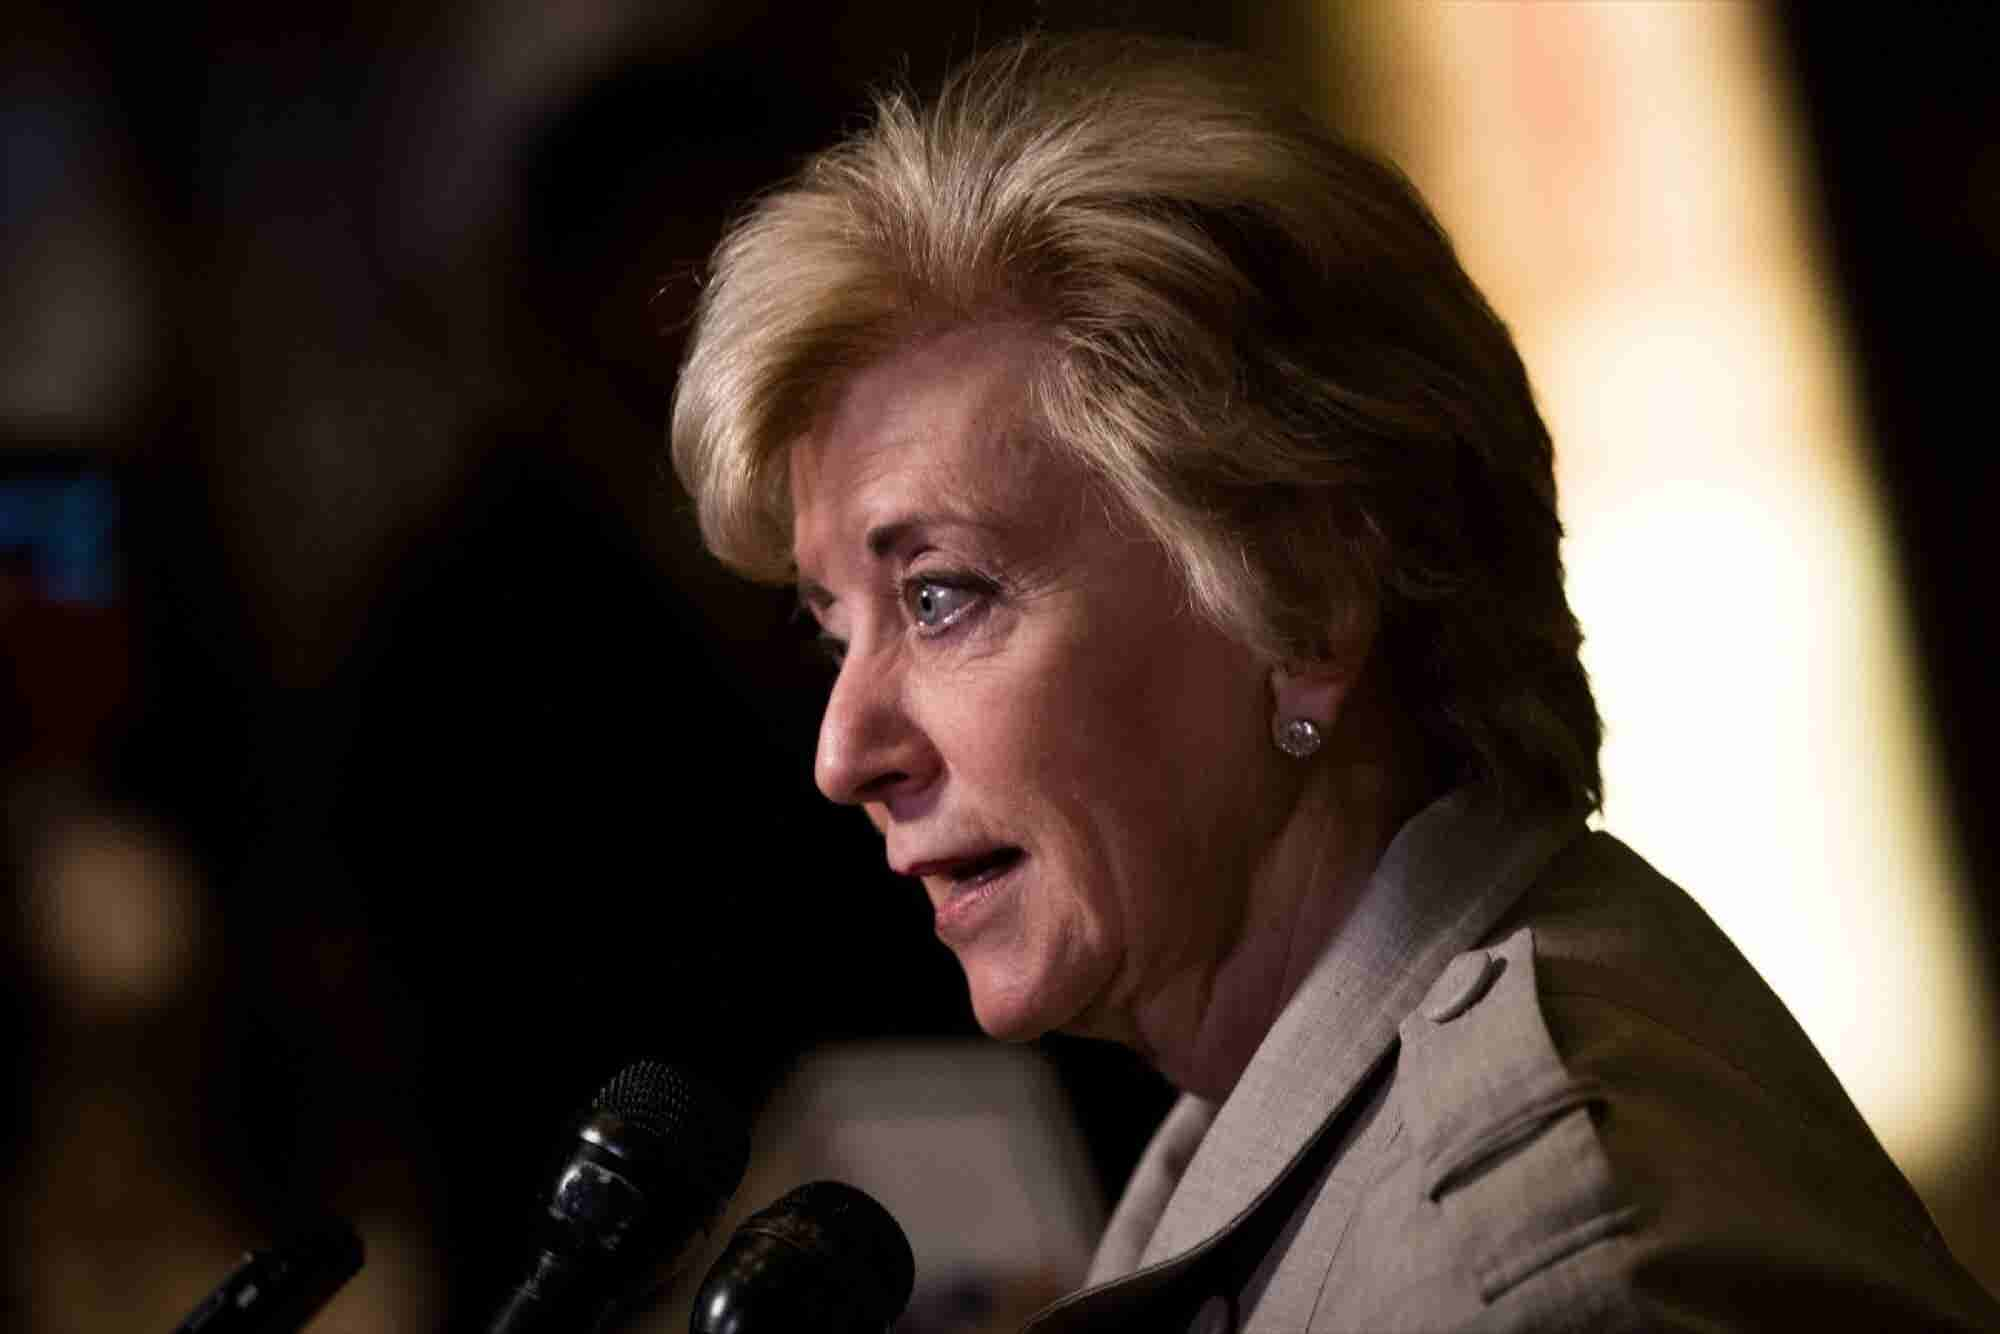 Trump Chooses Pro Wrestling Magnate Linda McMahon to Head SBA